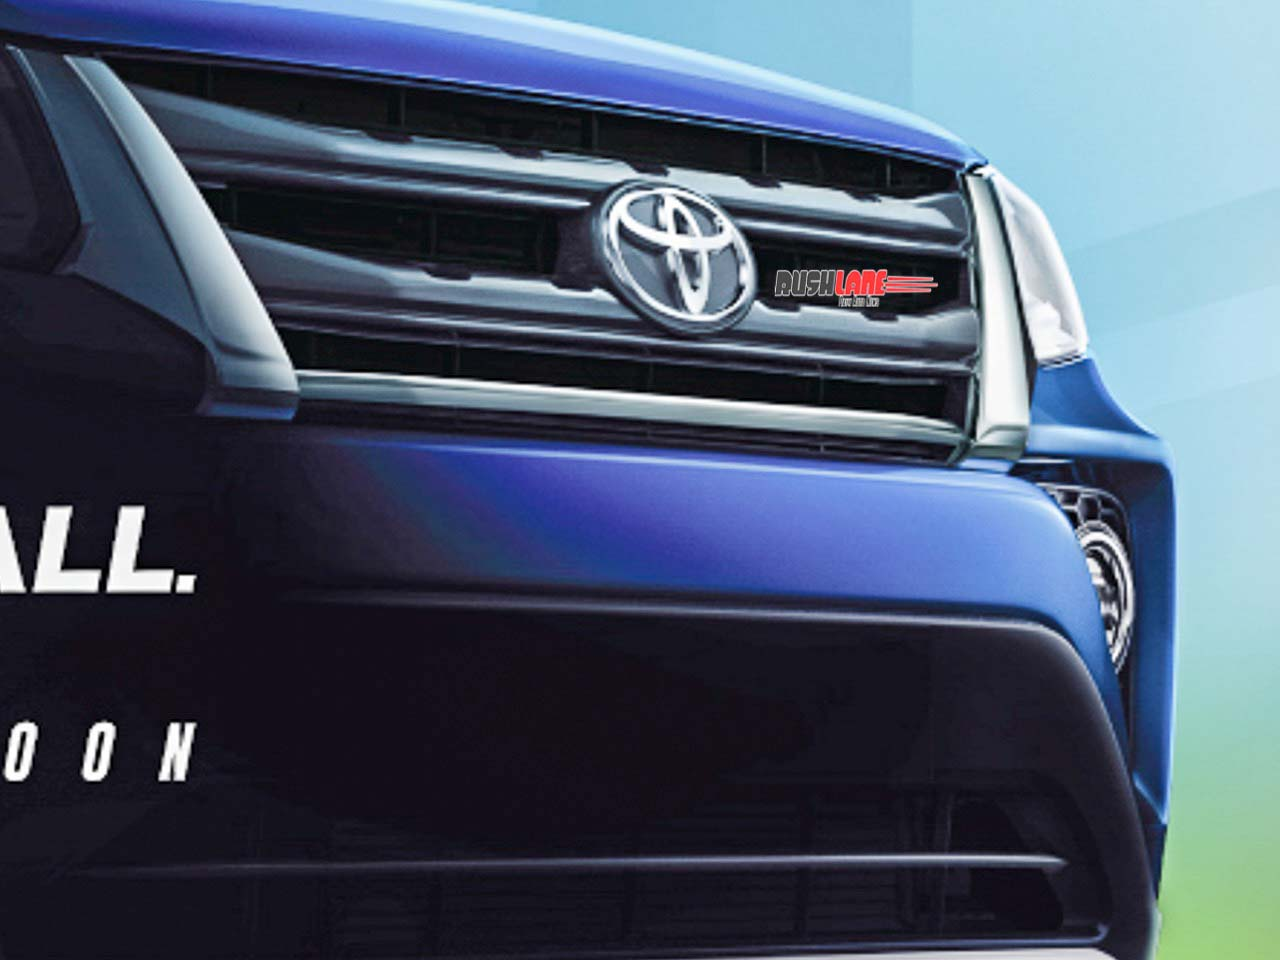 Toyota Urban Cruiser Suv Bookings Open From 22nd Aug